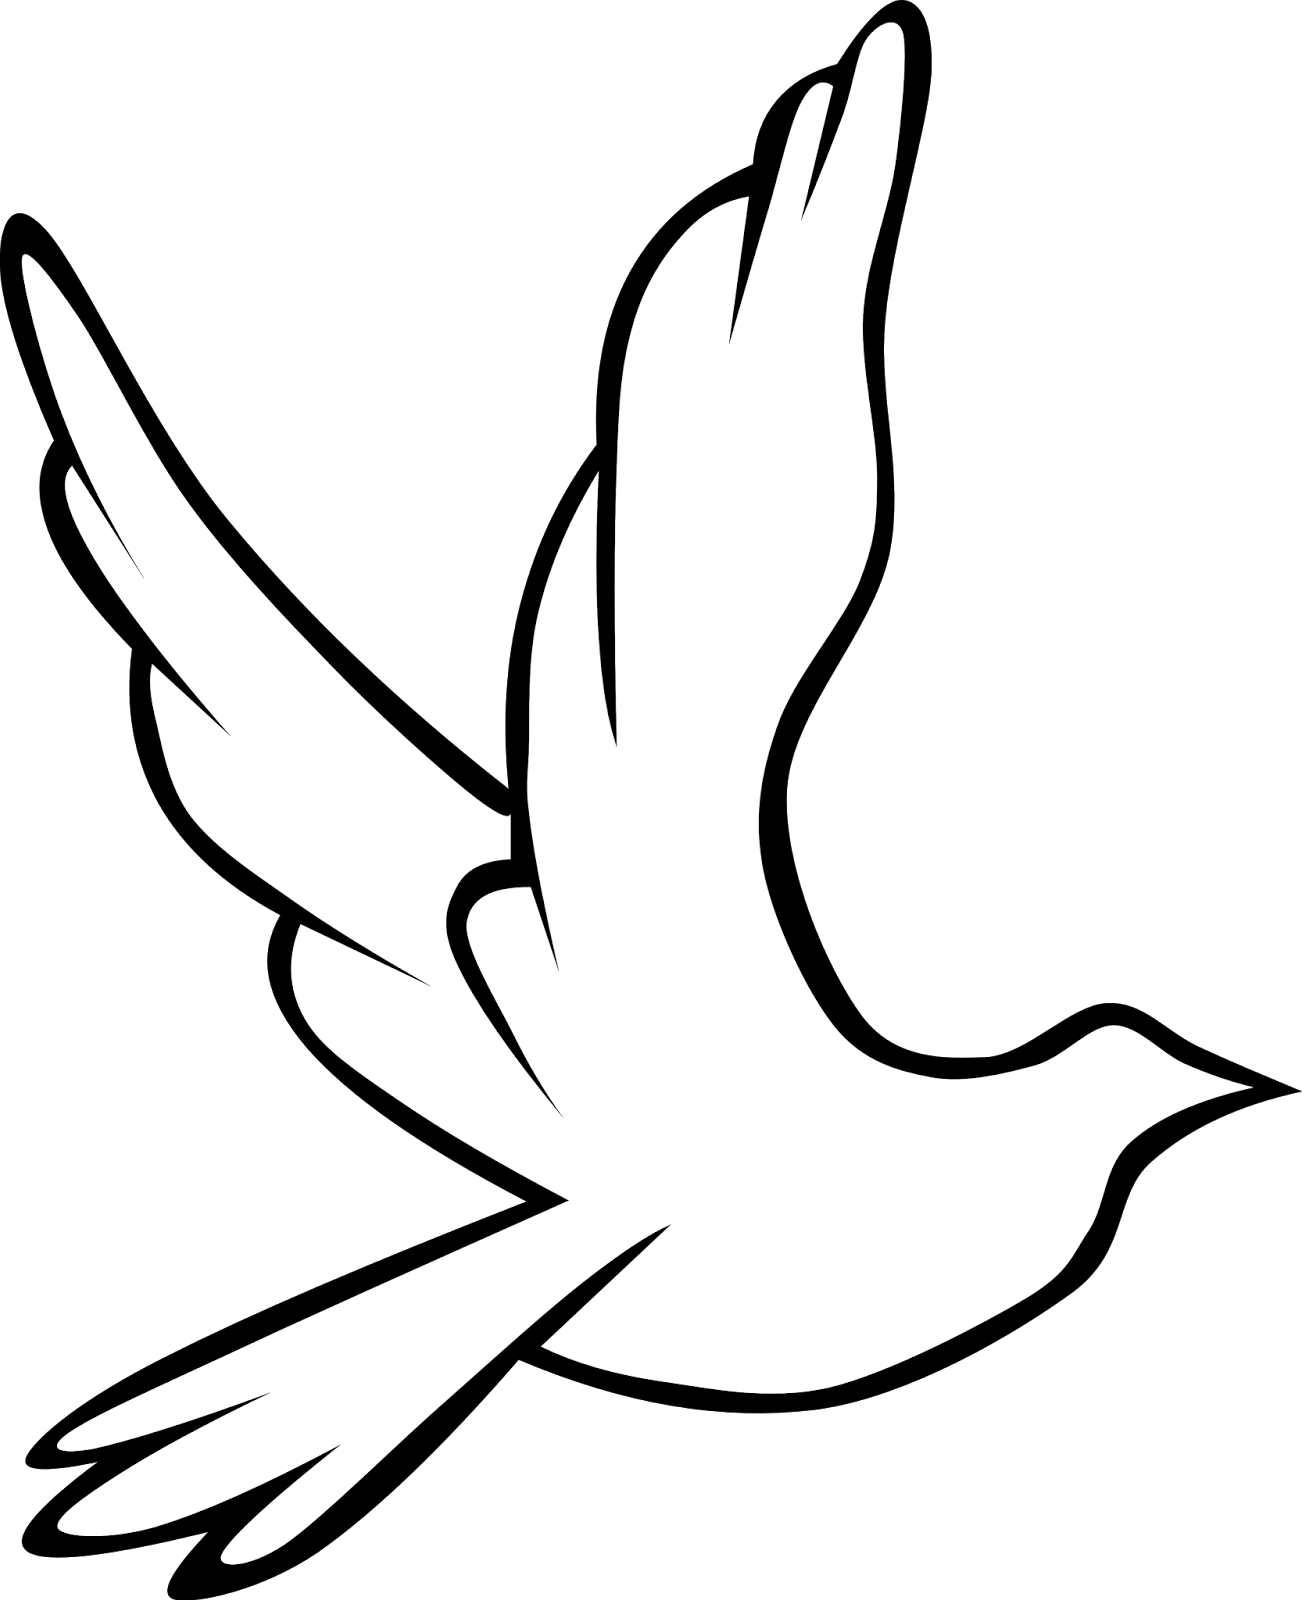 Peace clipart peace logo. Funeral program collection background